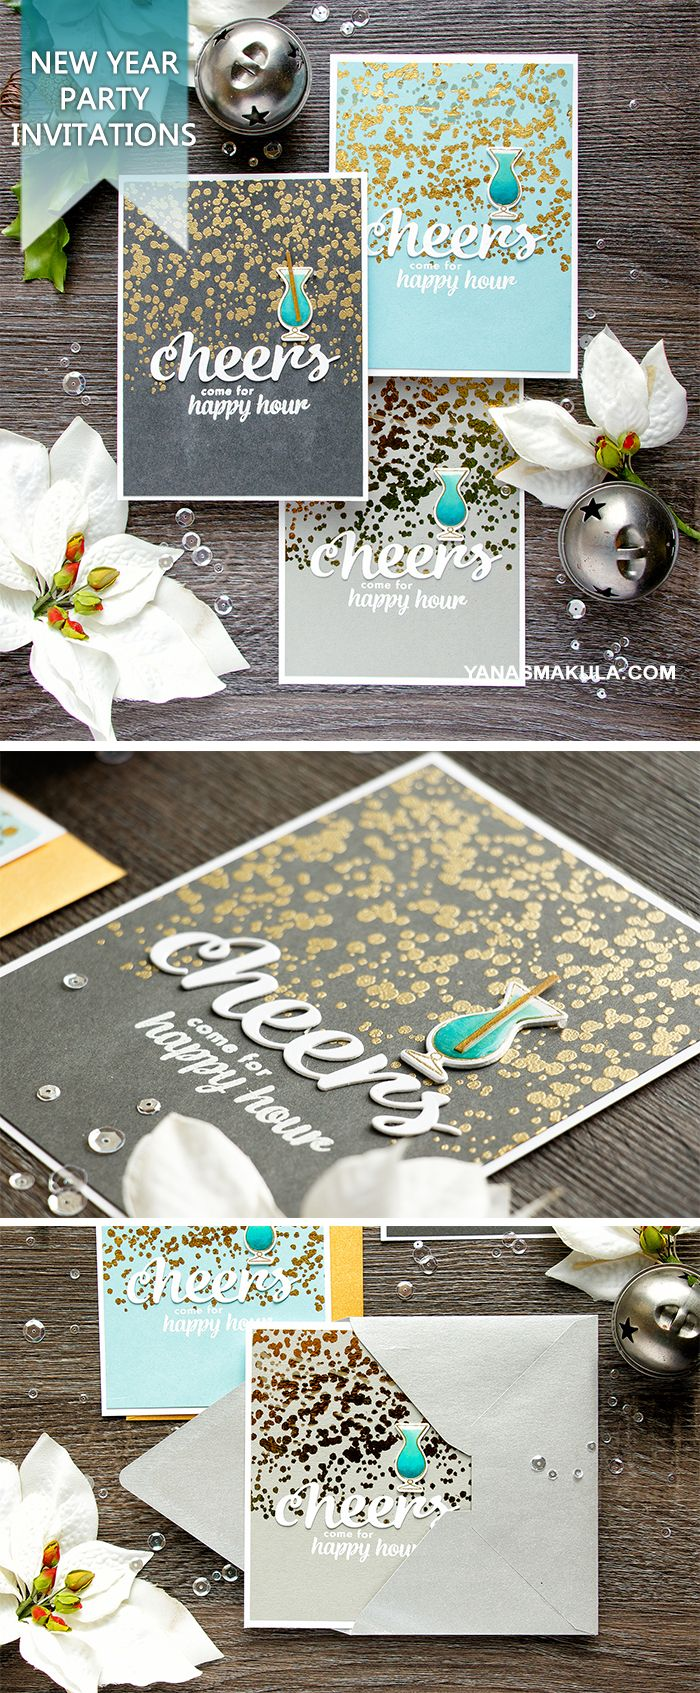 Create fantastic New Year's Eve Happy Hour Party Invitations with the help of Hero Arts December'16 My Monthly Hero Kit. For details and video tutorial, visit http://www.yanasmakula.com/?p=56196